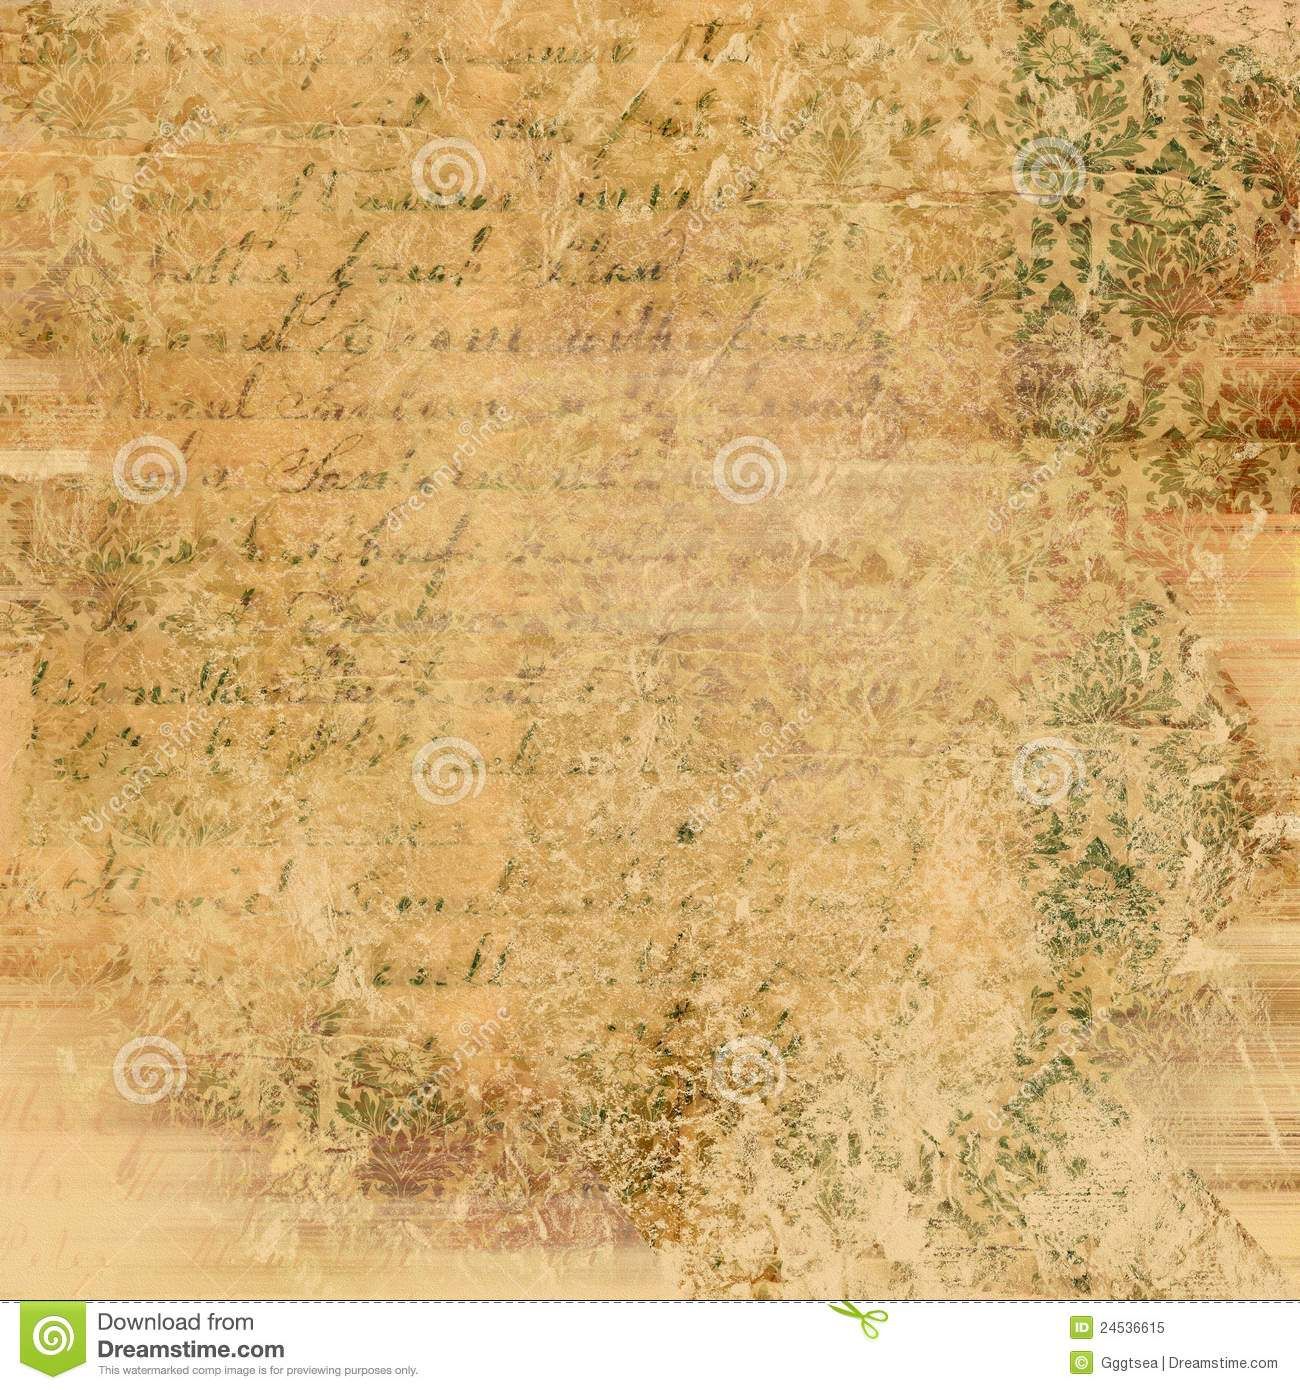 Abstract Vintage Paper Texture Royalty Free Stock Photo - Image ...